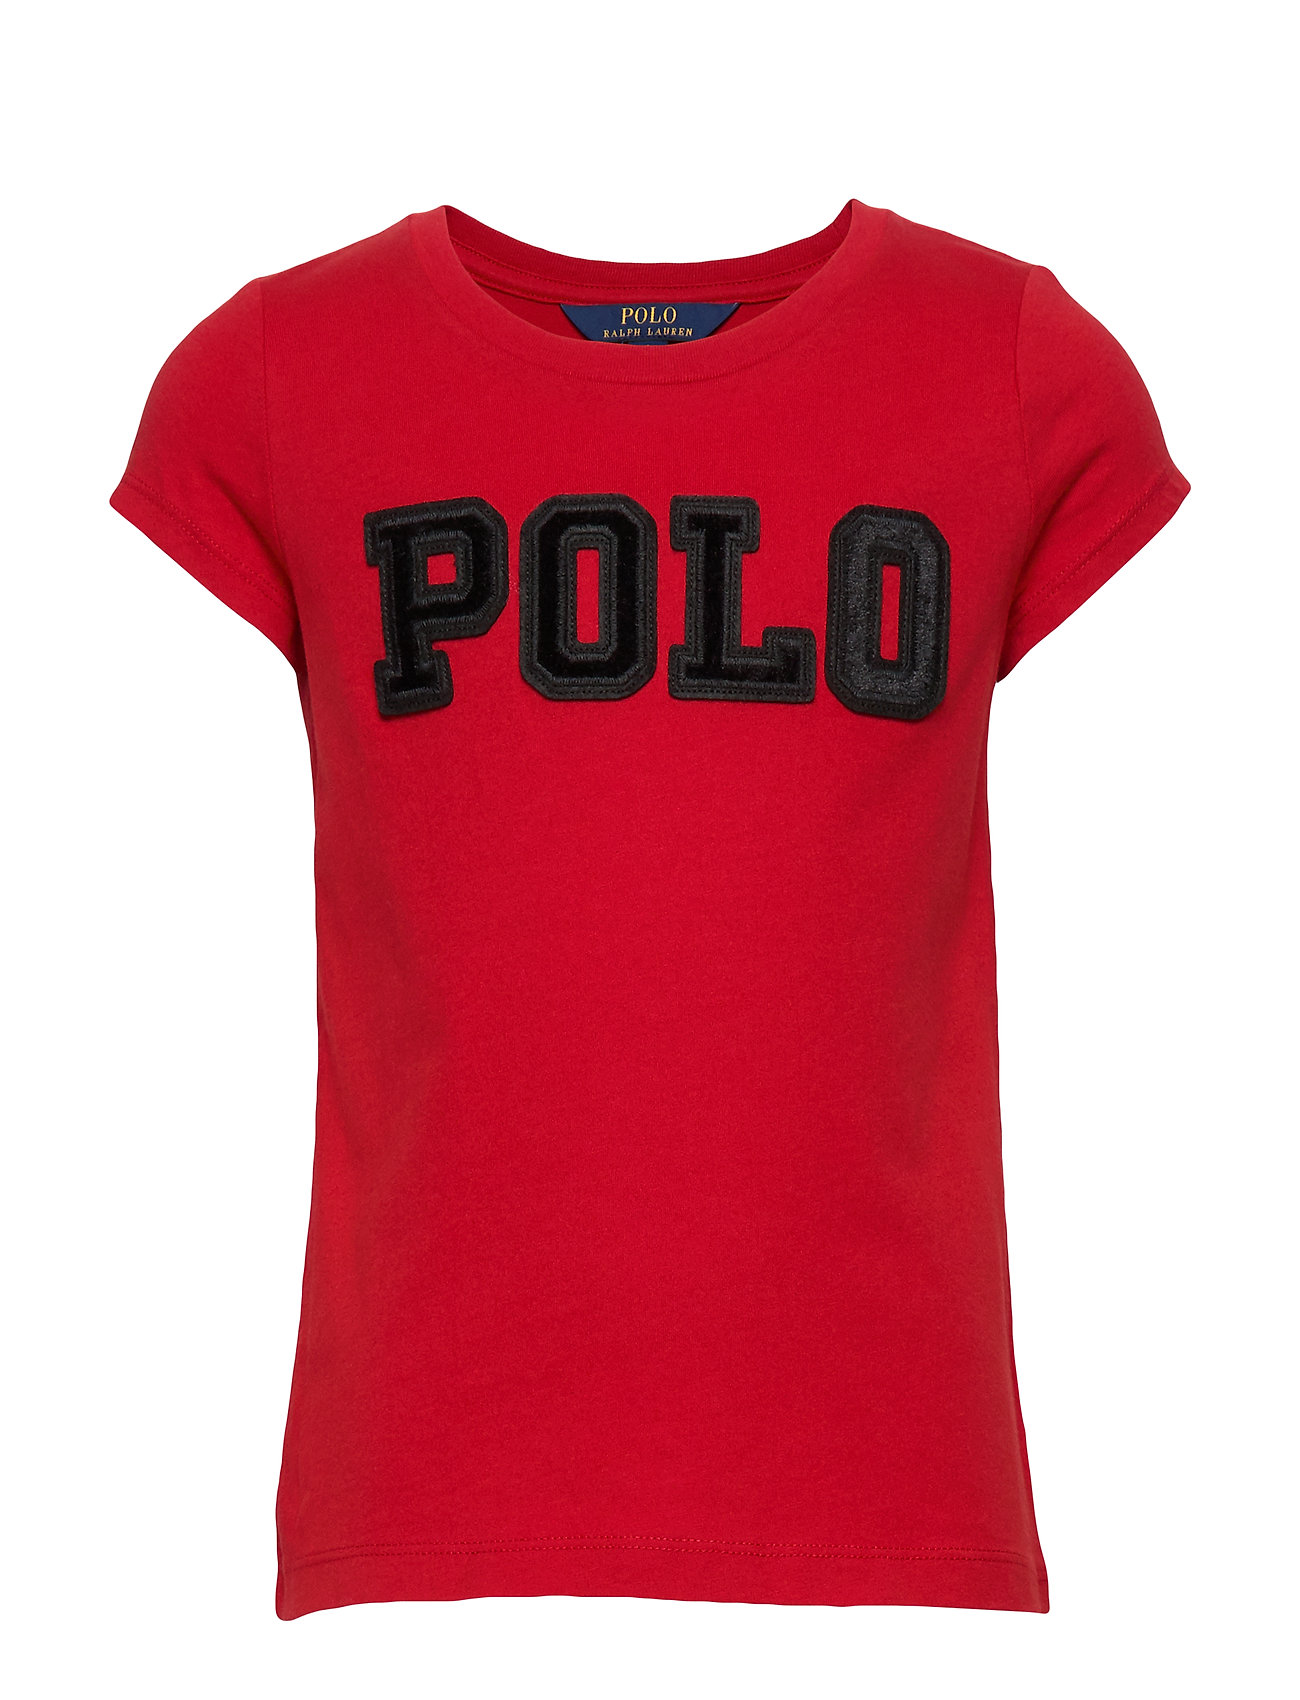 Ralph Lauren Kids POLO HOLIDAY-TOPS-KNIT - RL 2000 RED